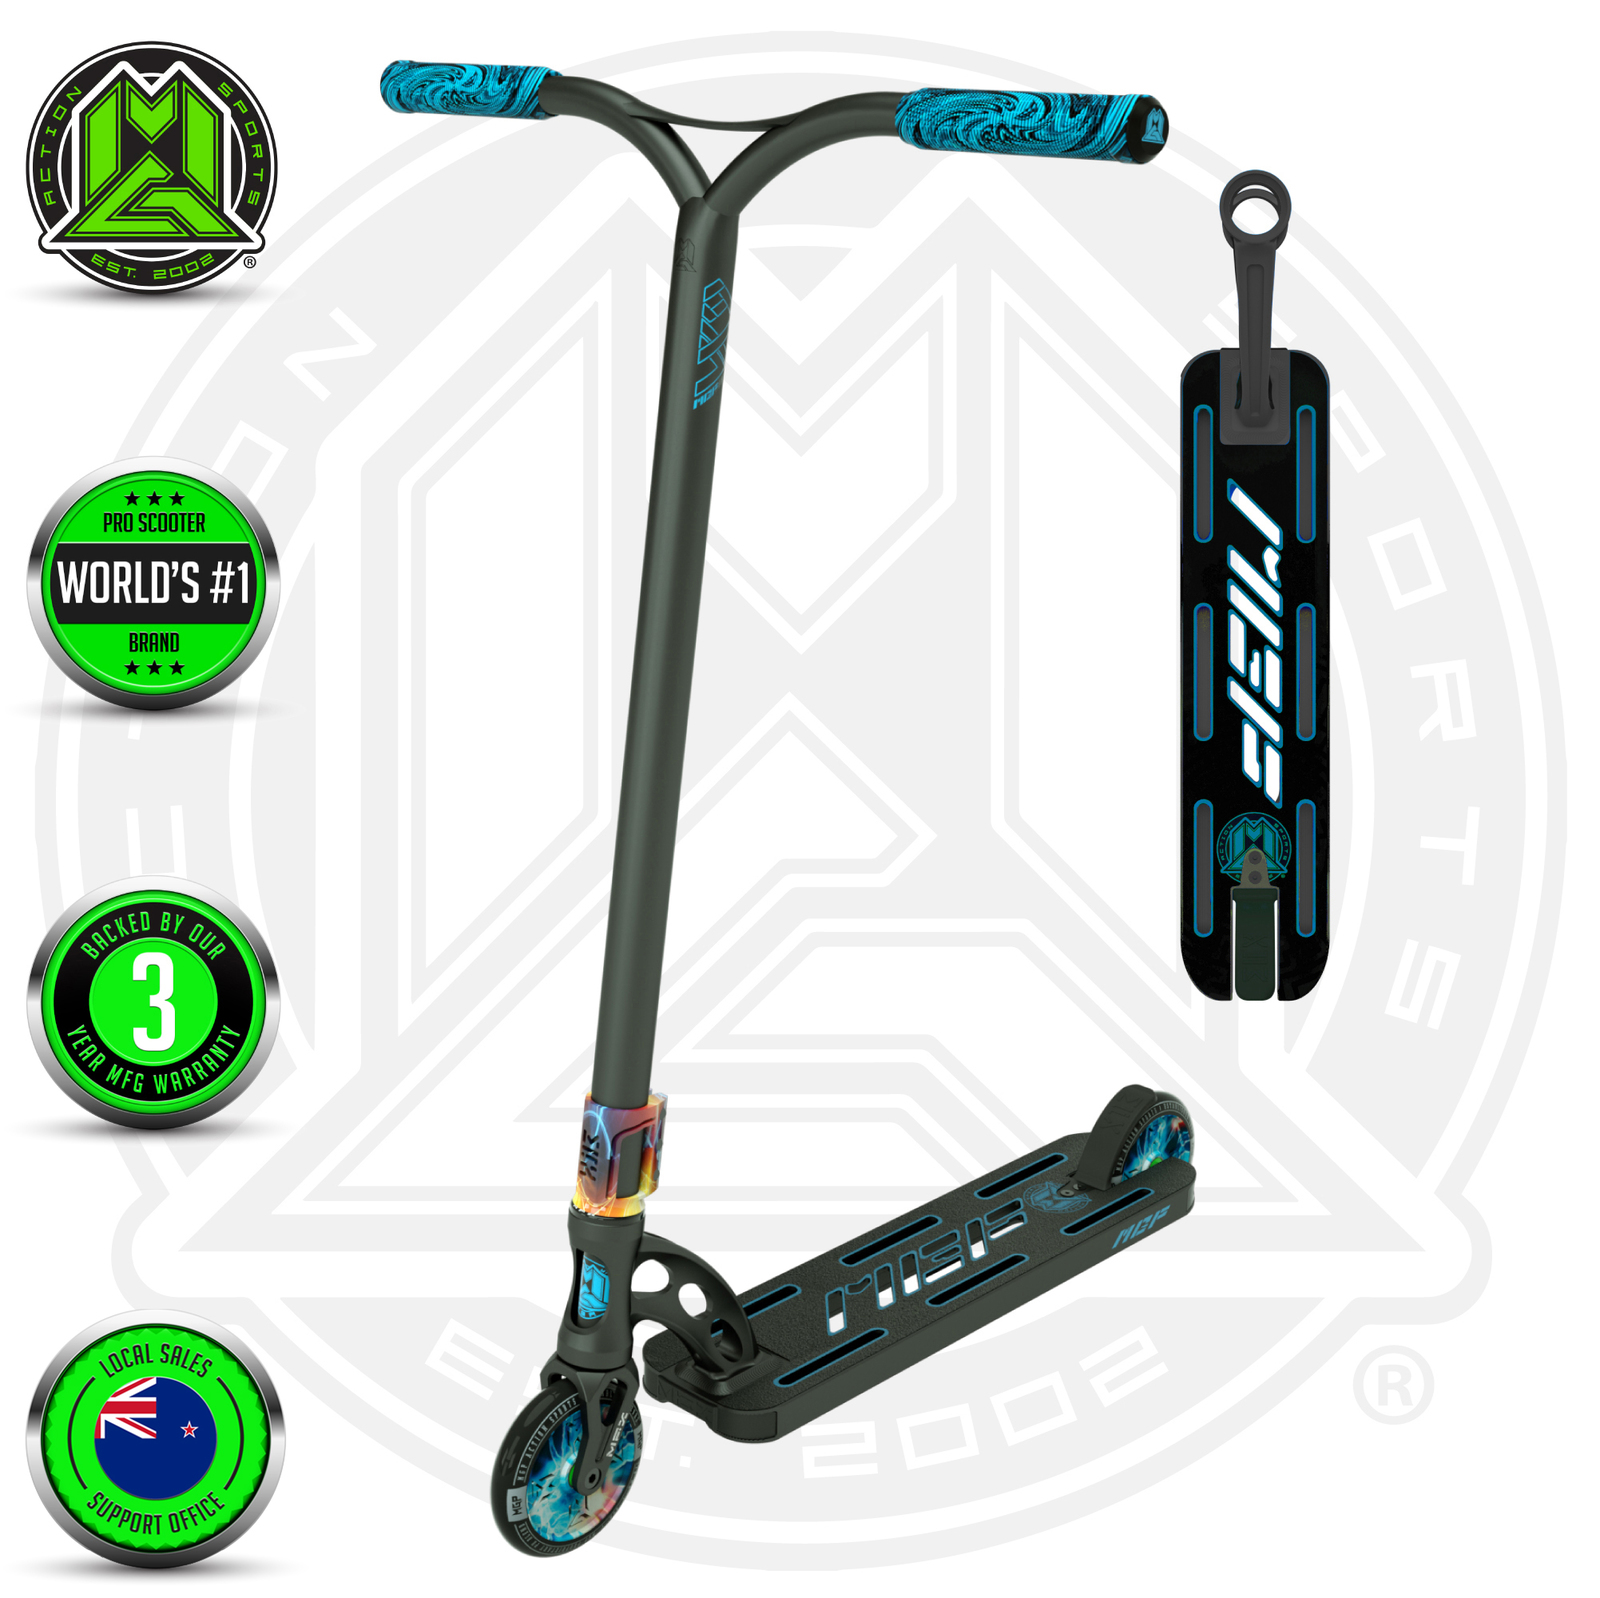 MADD Gear: VX9 Extreme Scooter - Proton image